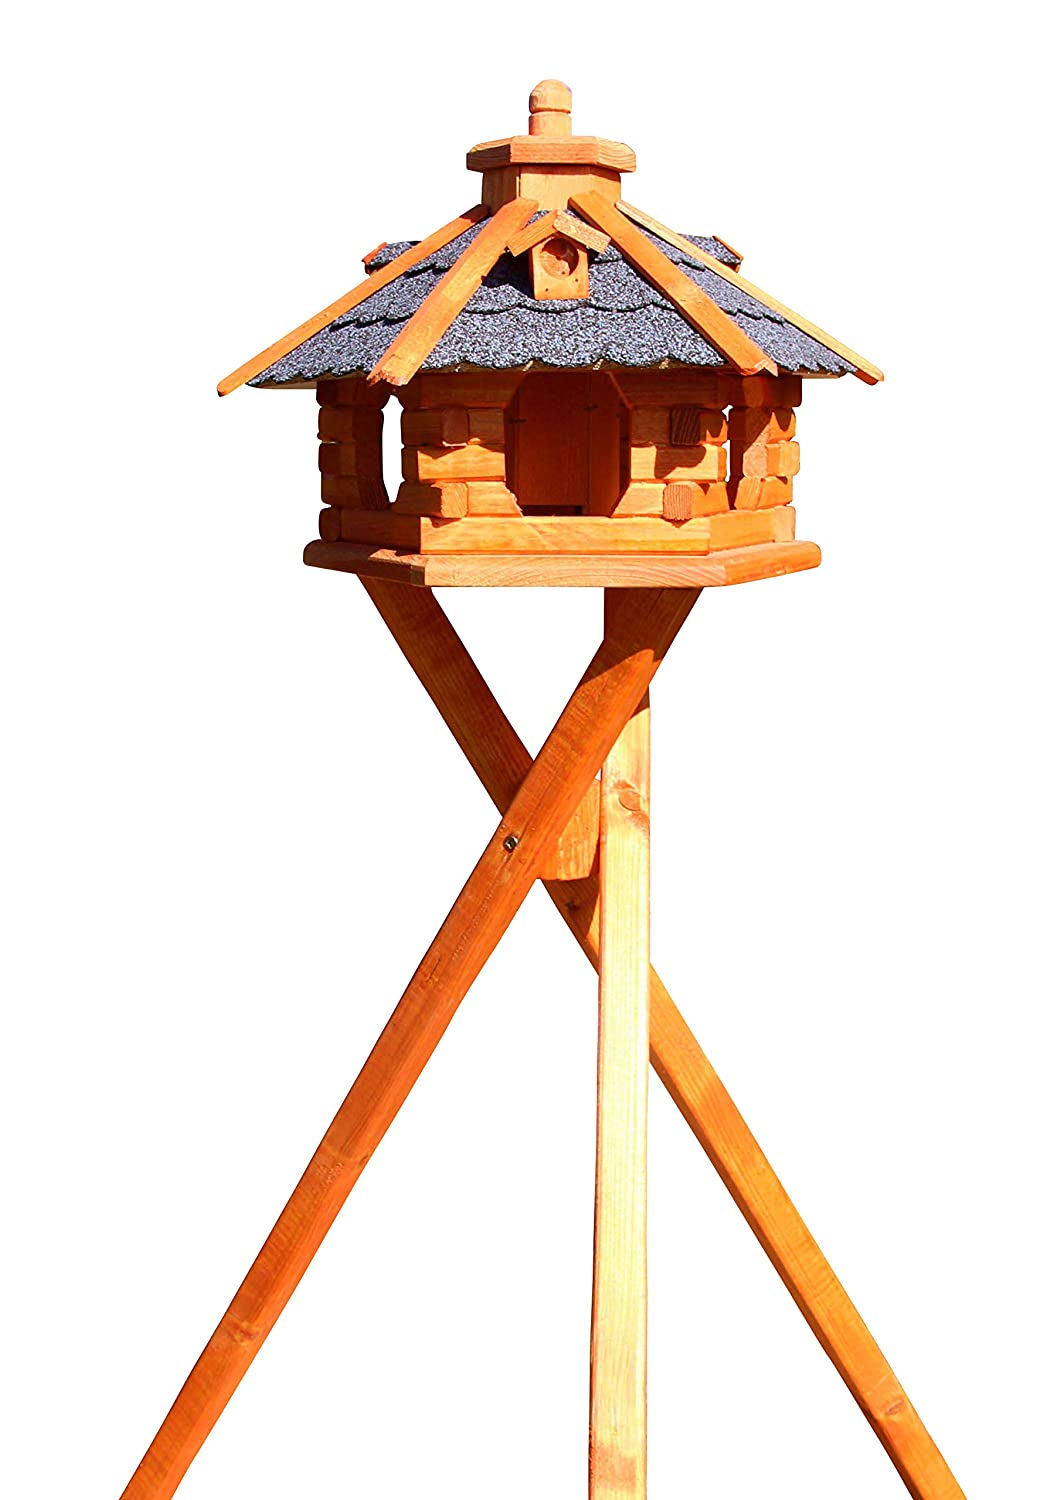 bluee Wooden bird house with stand, Model 4.